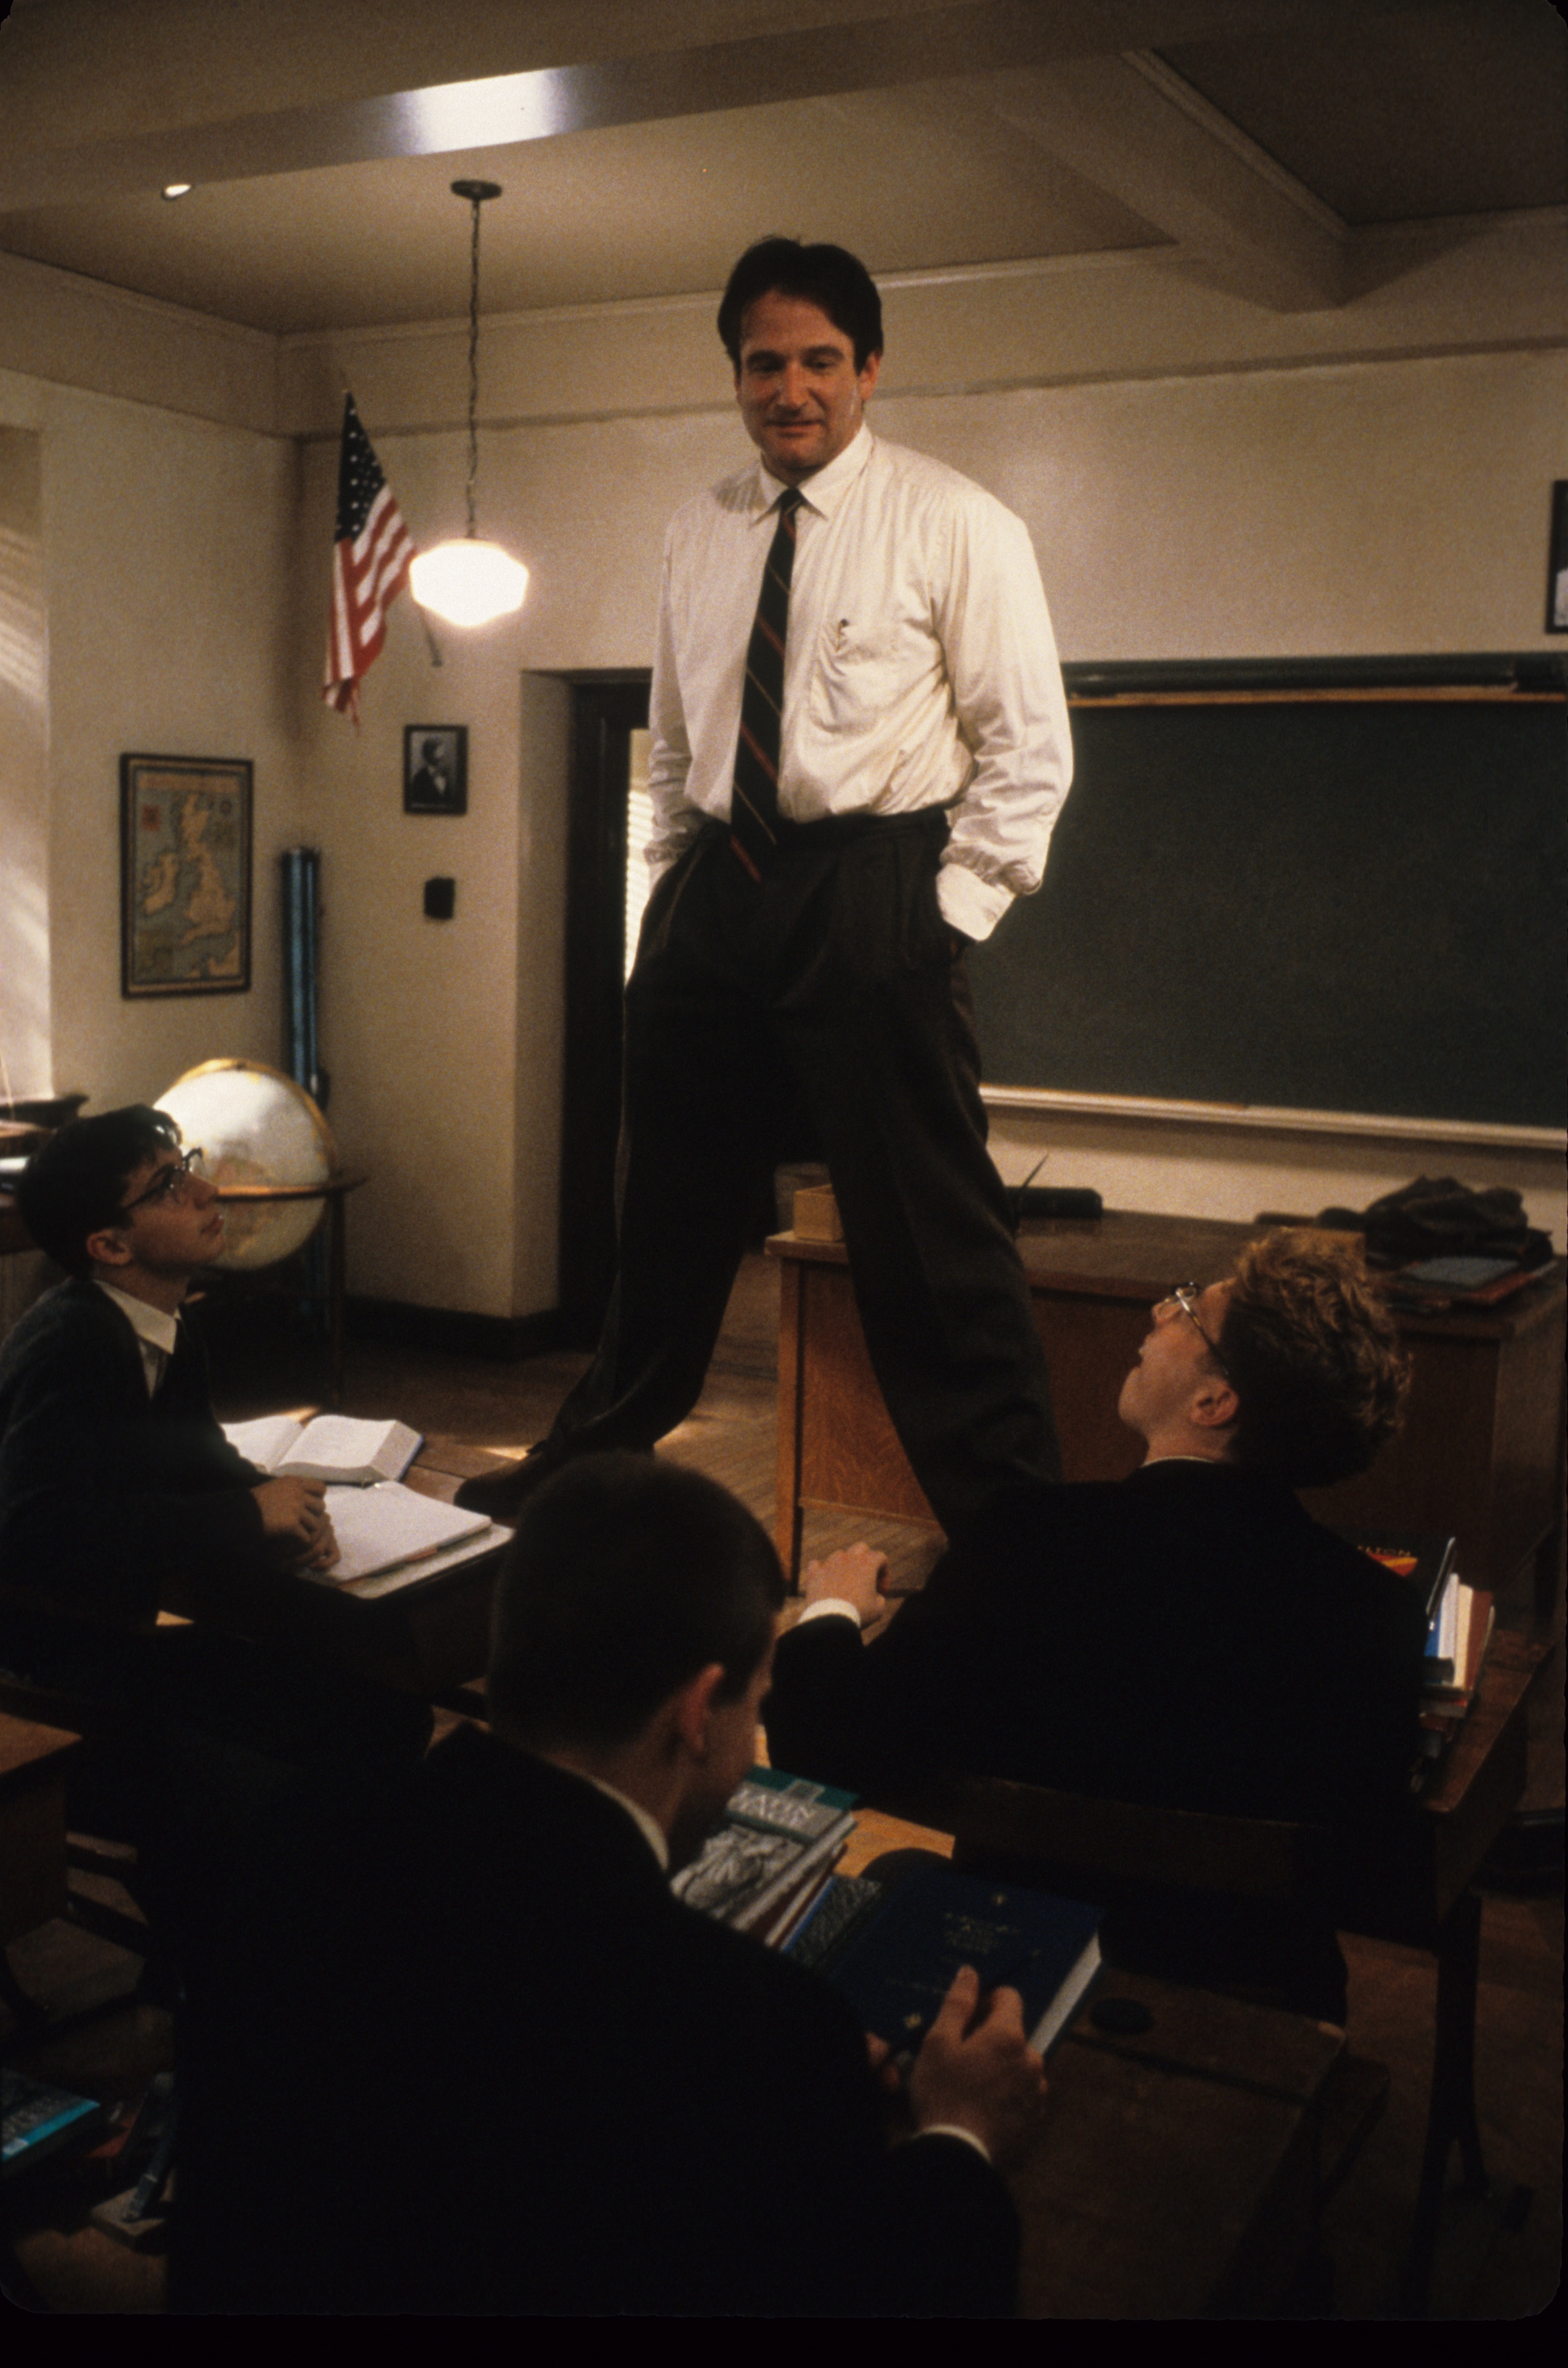 about dead poet society Dead poets society study guide contains a biography of director peter weir, quiz questions, major themes, characters, and a full summary and analysis.